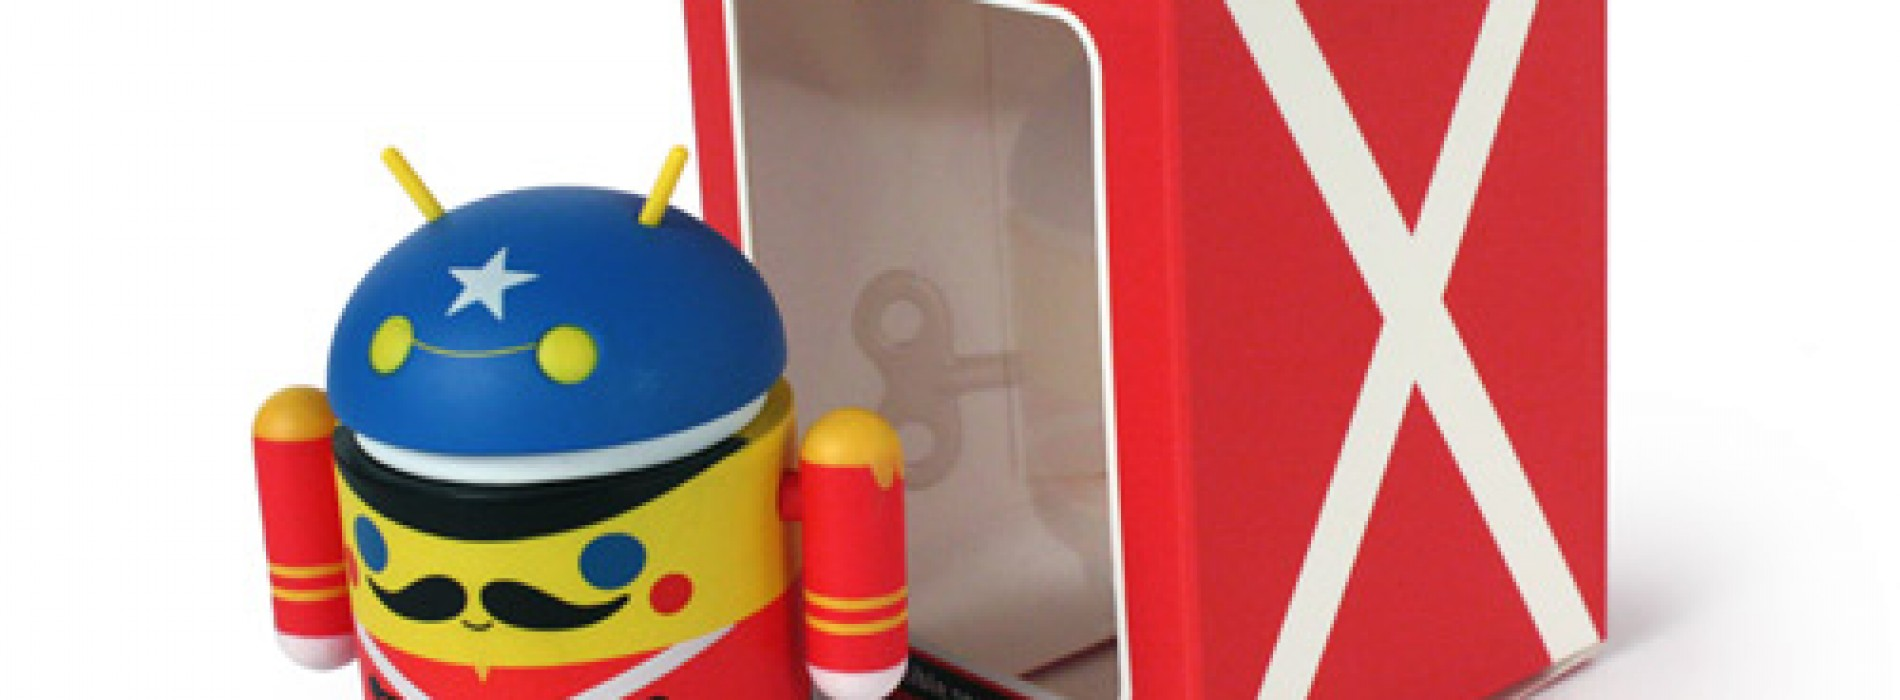 Get your special edition Android Toy Soldier from Dead Zebra this Wednesday